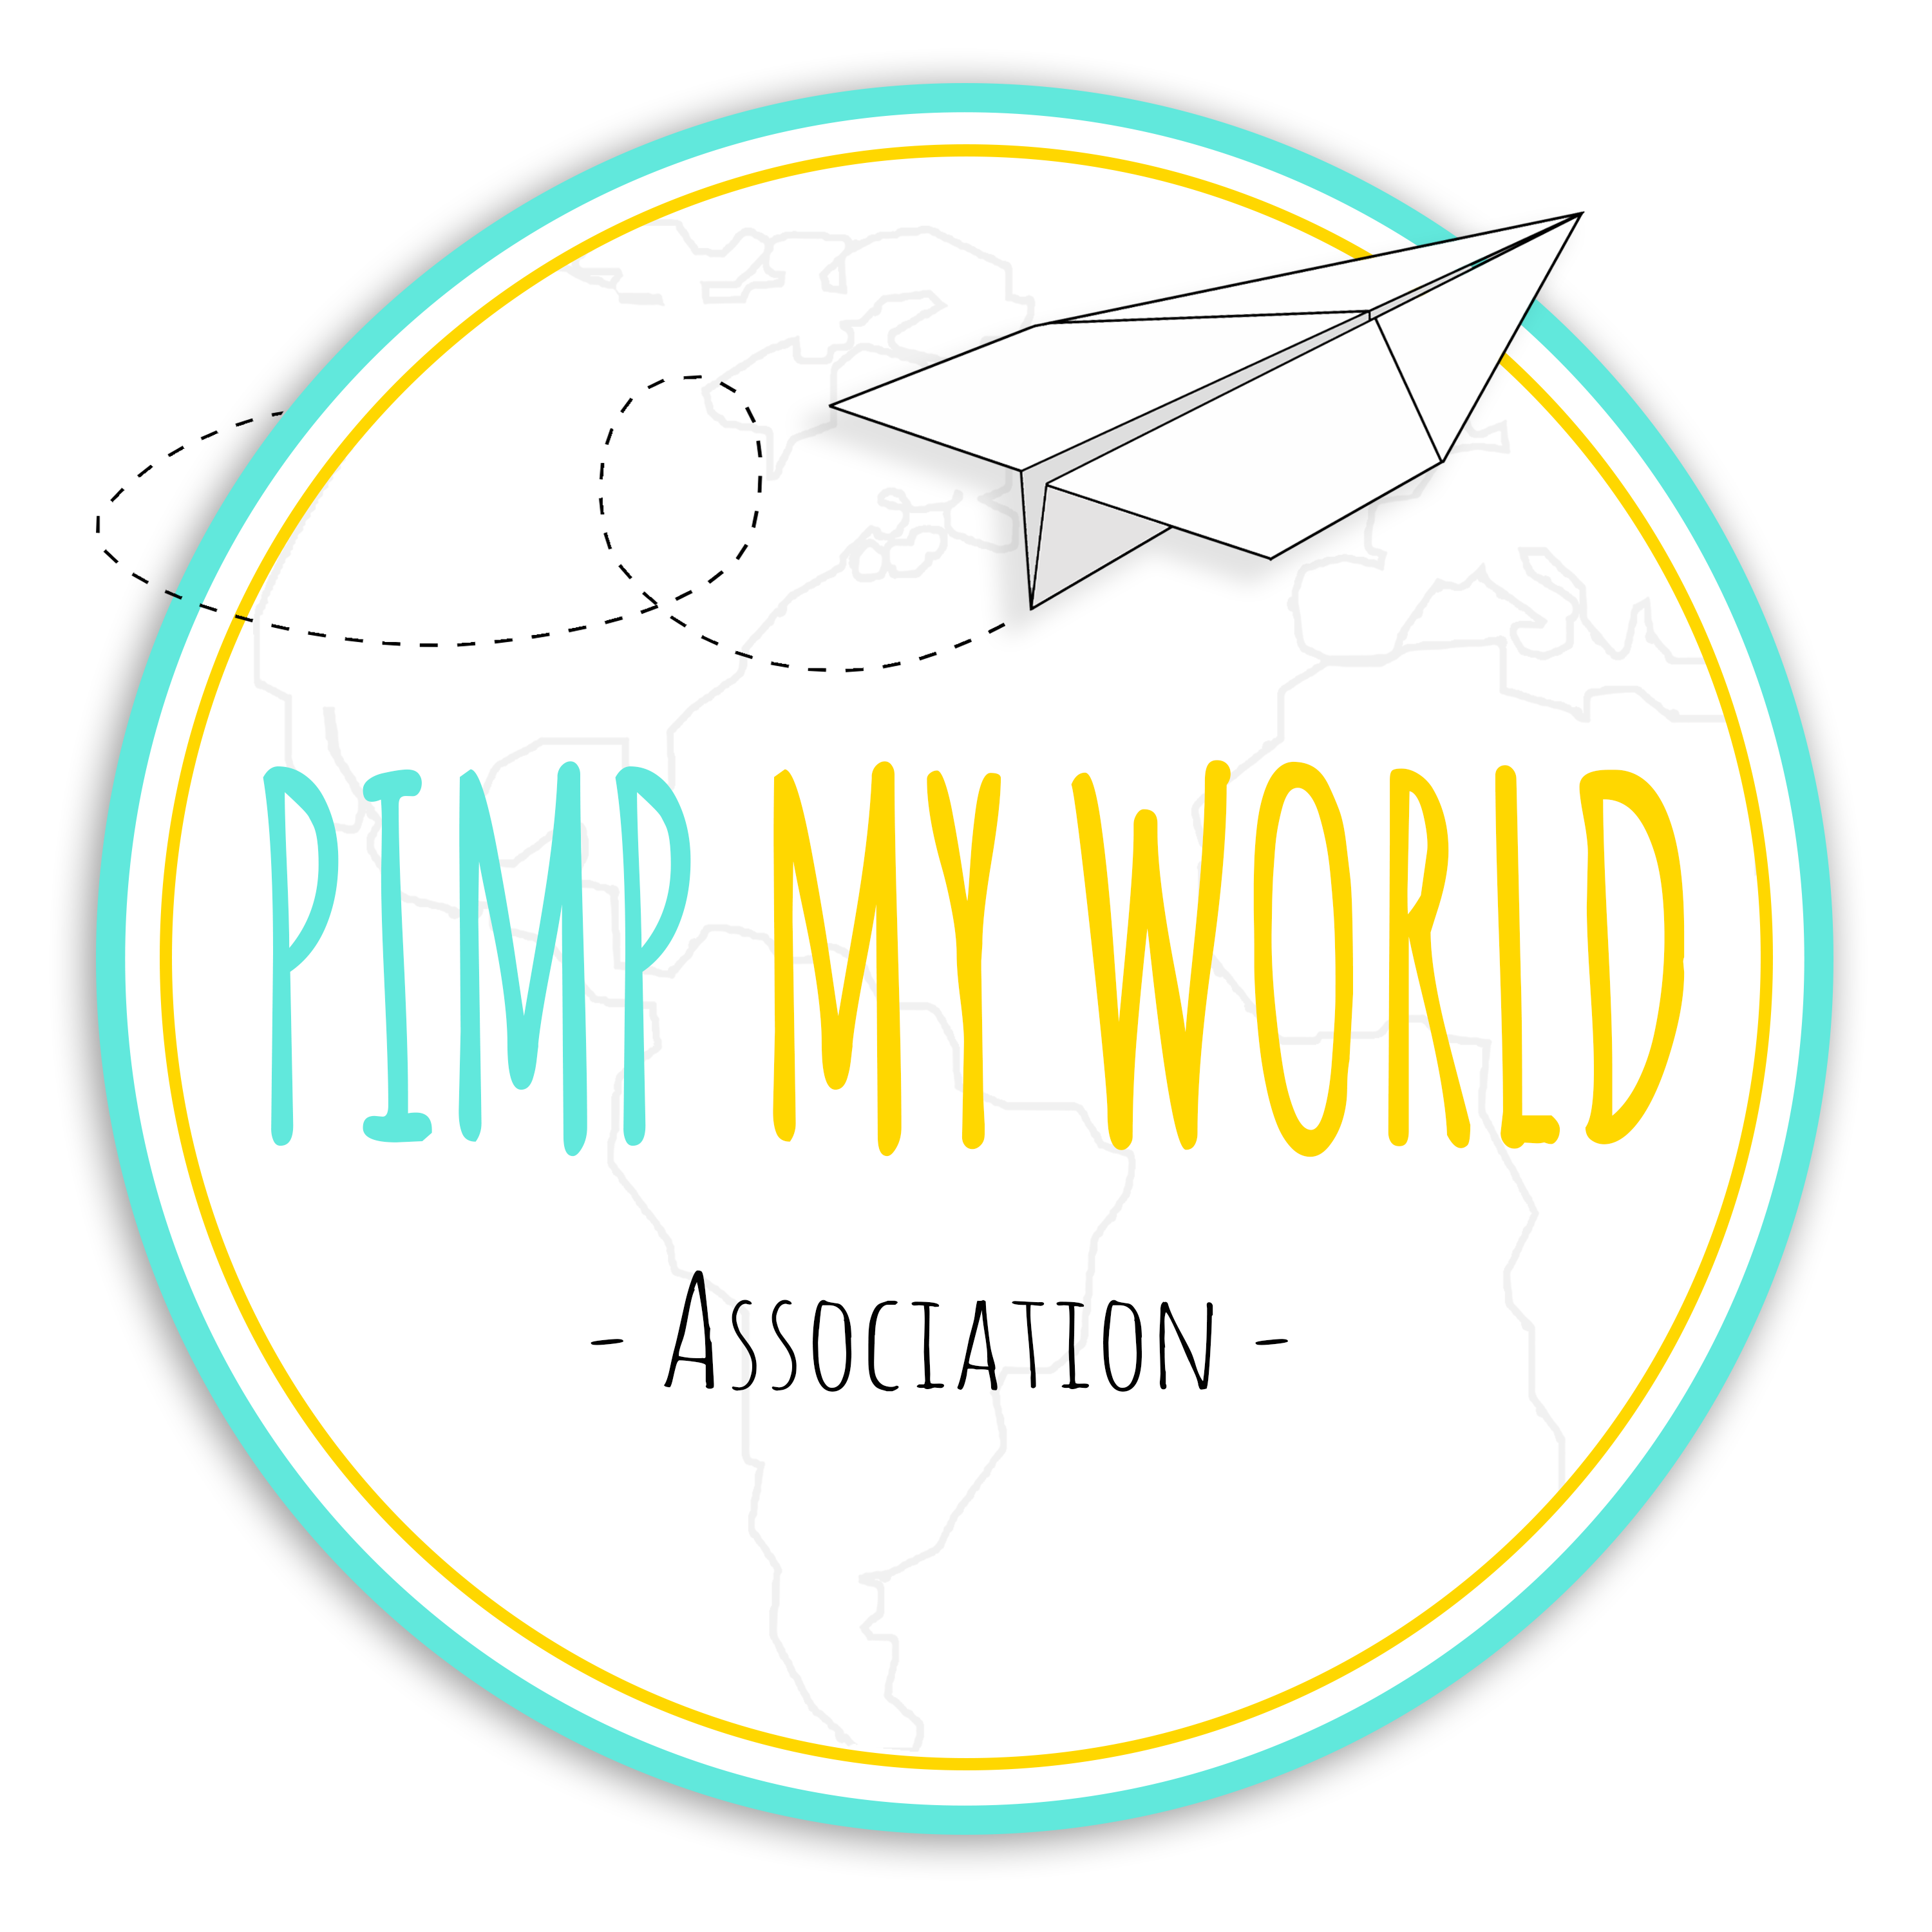 Association - Pimp My World